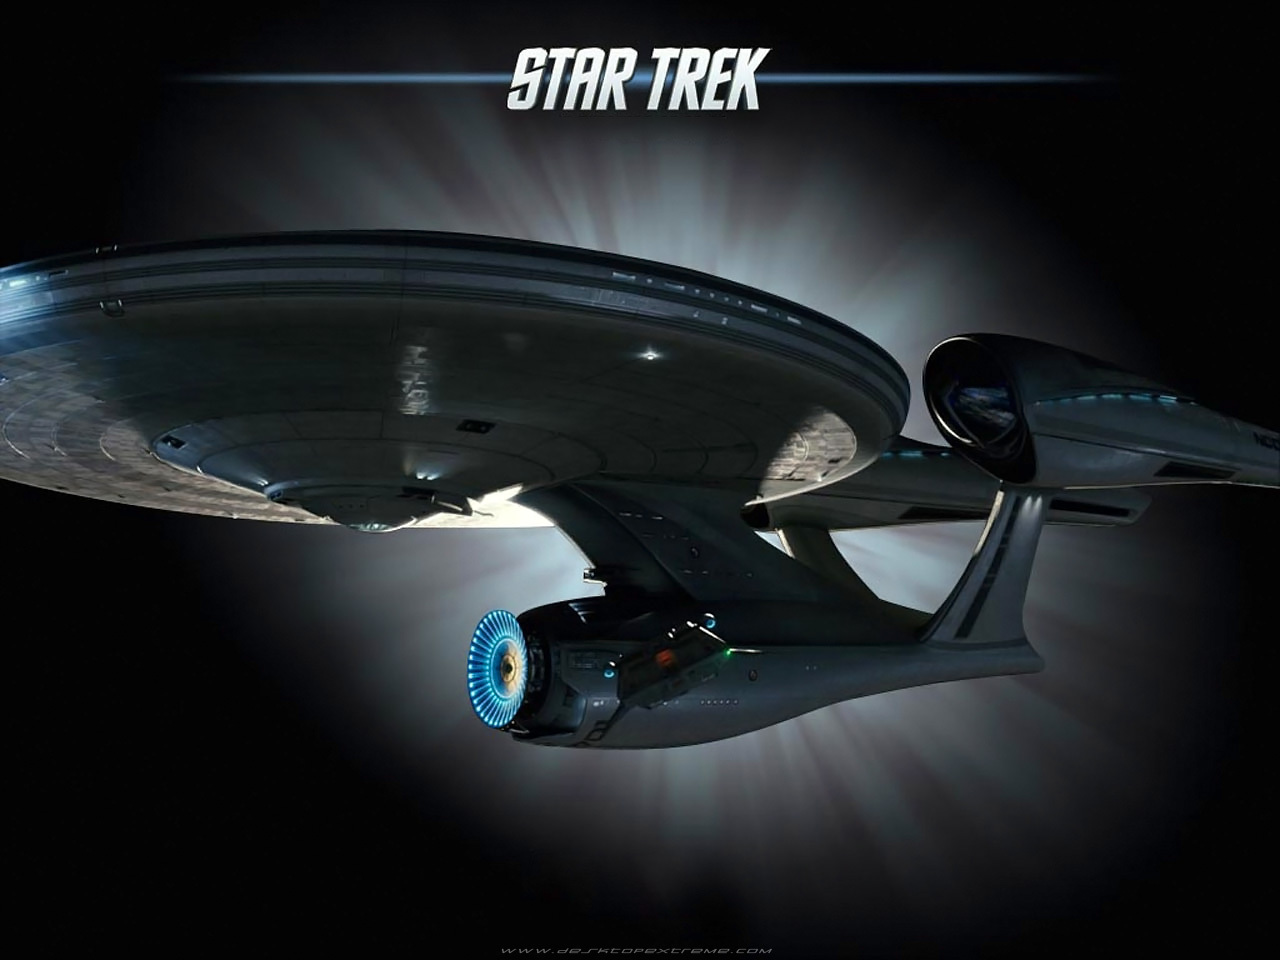 Star Trek Wallpaper Ipad Imagebankbiz